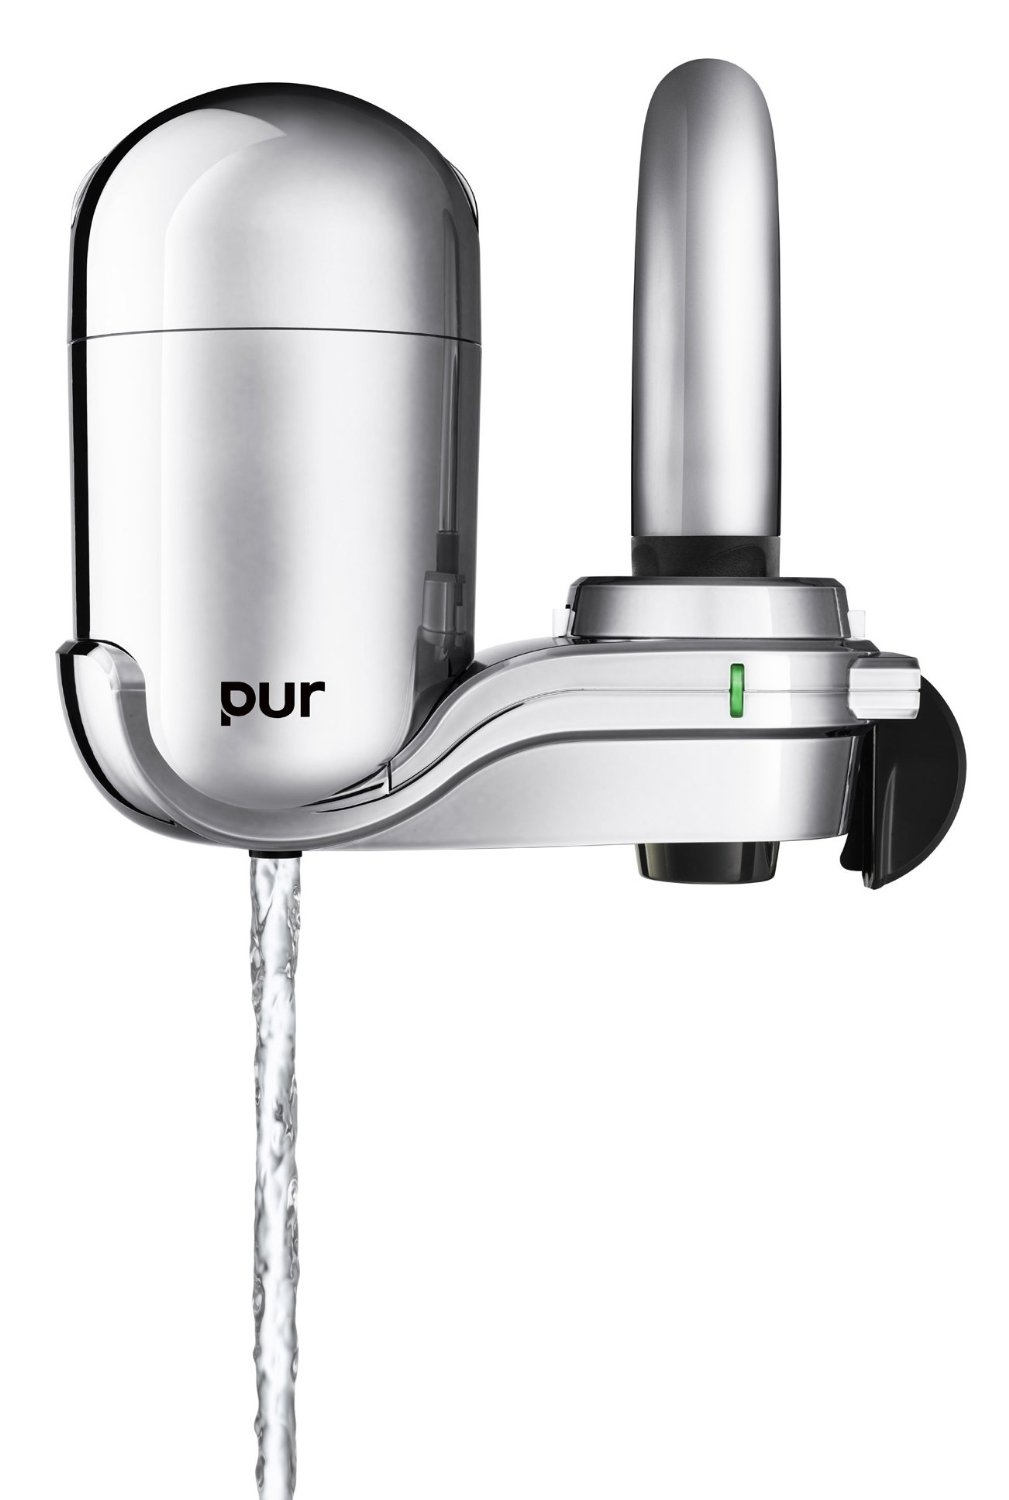 top 10 best water filters top value reviews for proportions 1009 x 1500